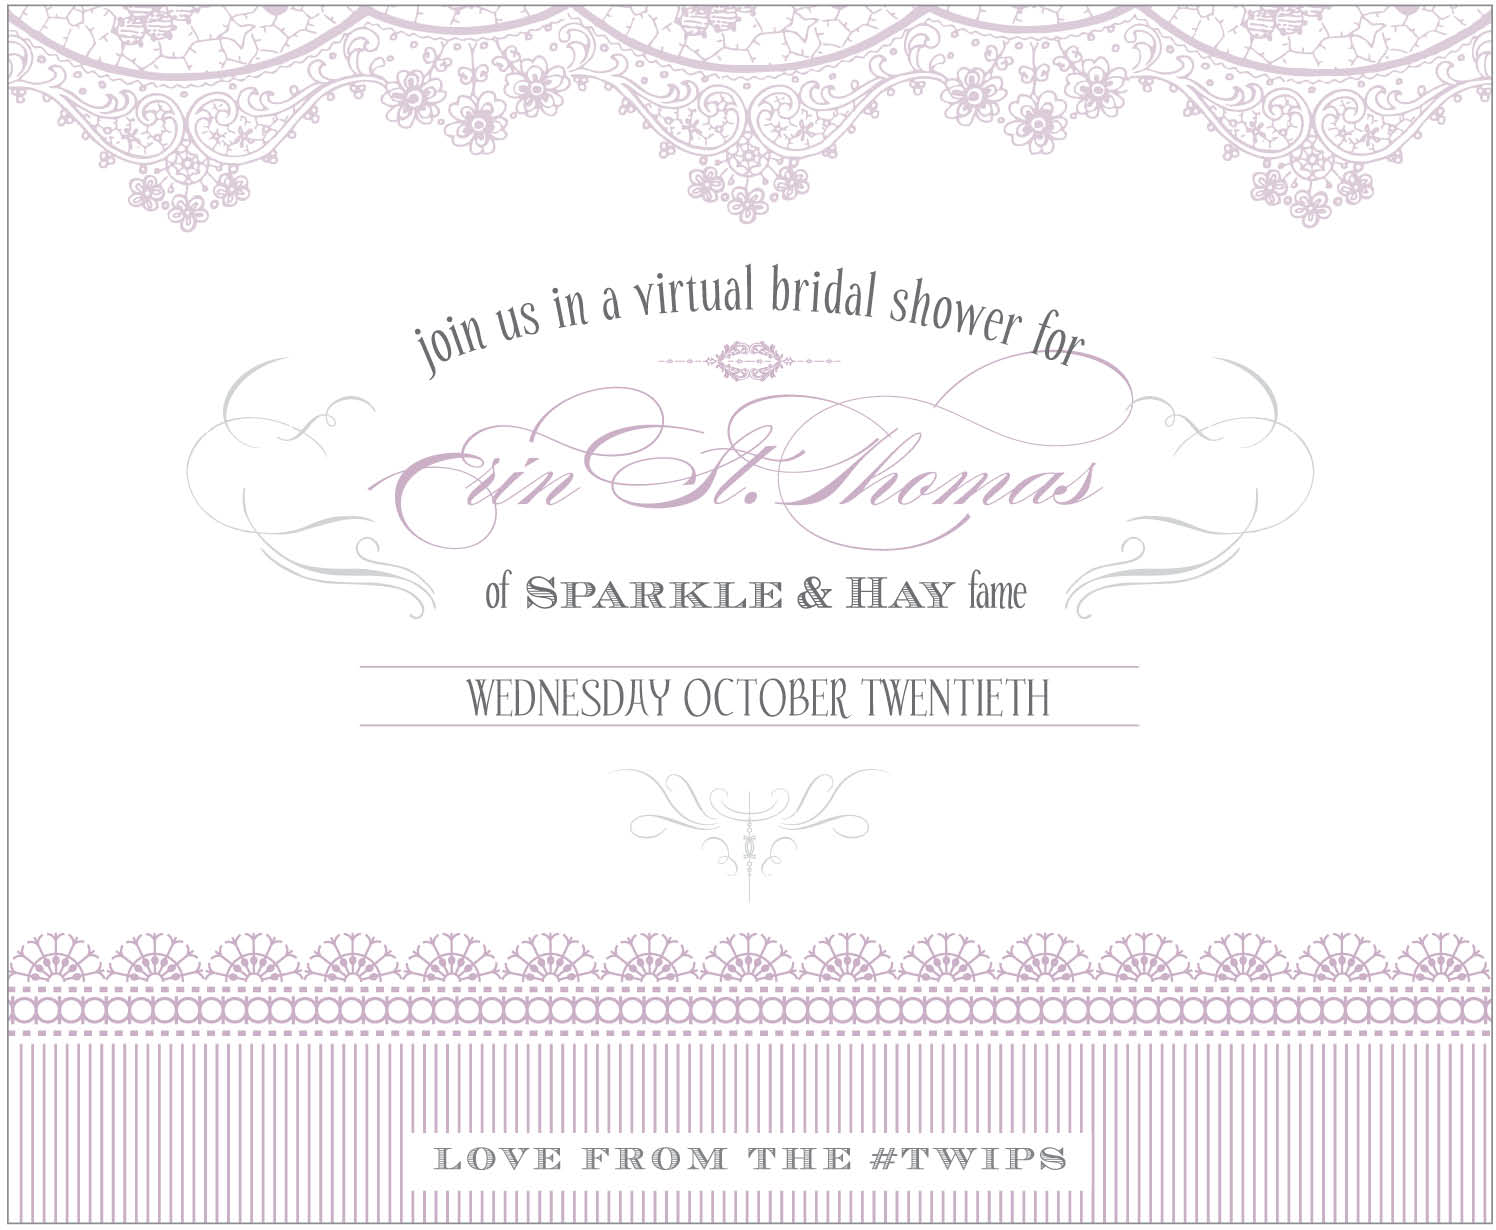 Bridal Shower Invitations Invitation Poems And Quotes Free Printable 50th Anniversary 25th